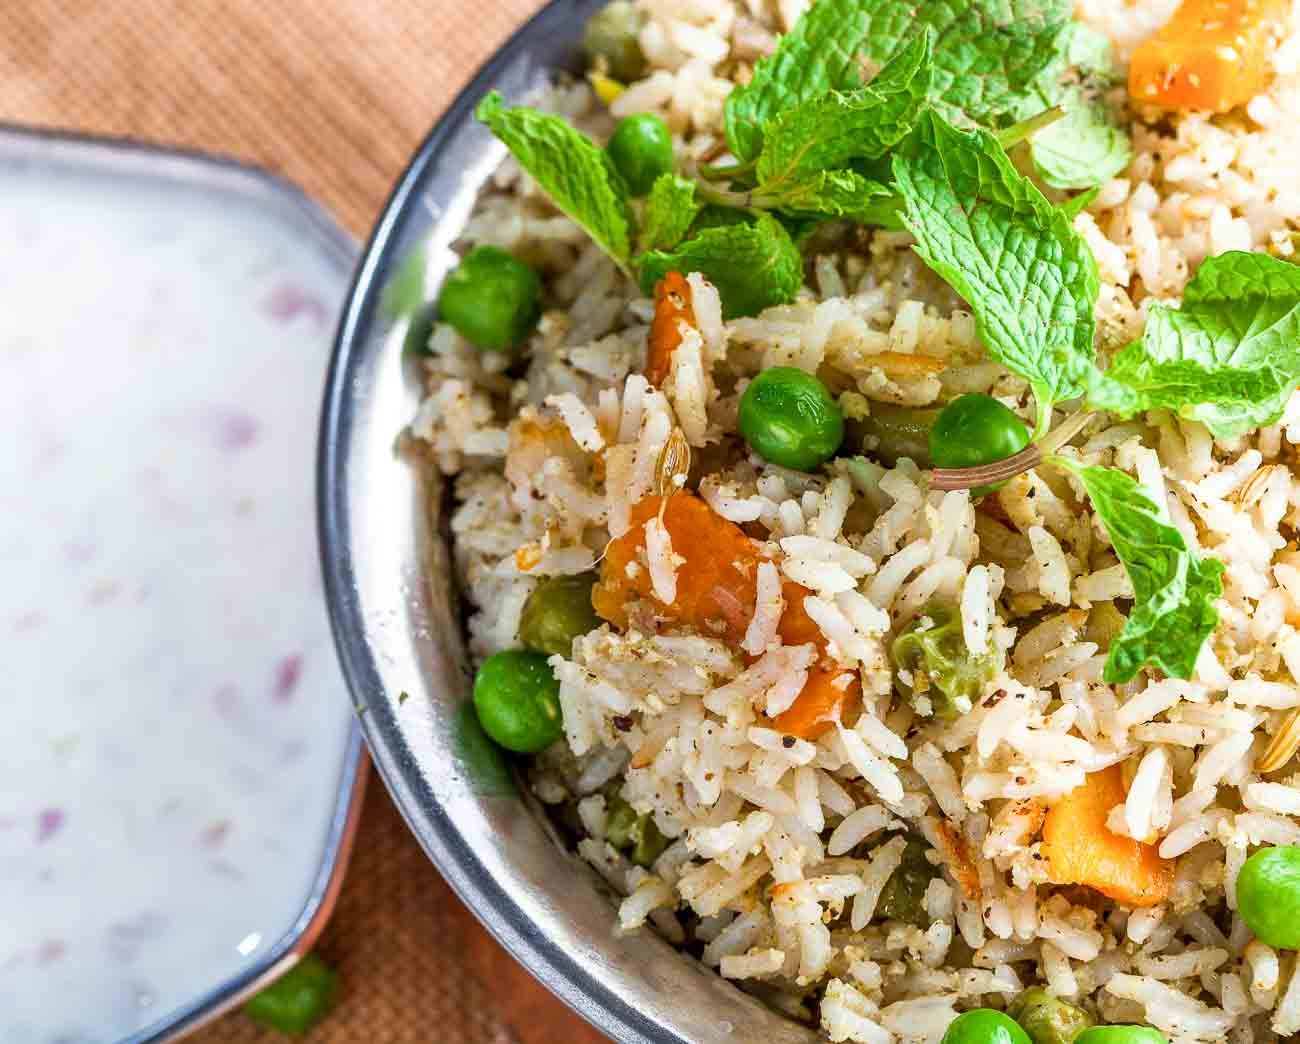 The food from the Chettinad Cuisine is spicy and aromatic. You must try our special recipe of Chettinad Vegetable Pulao made with a rich blend of spices and silver range of Kohinoor Super Basmati Rice for its great aroma slender grains & buttery taste. Serve it along with Vegetable Kurma for a scrumptious lunch or dinner. --> http://ift.tt/2ayKrhs #Vegetarian #Recipes